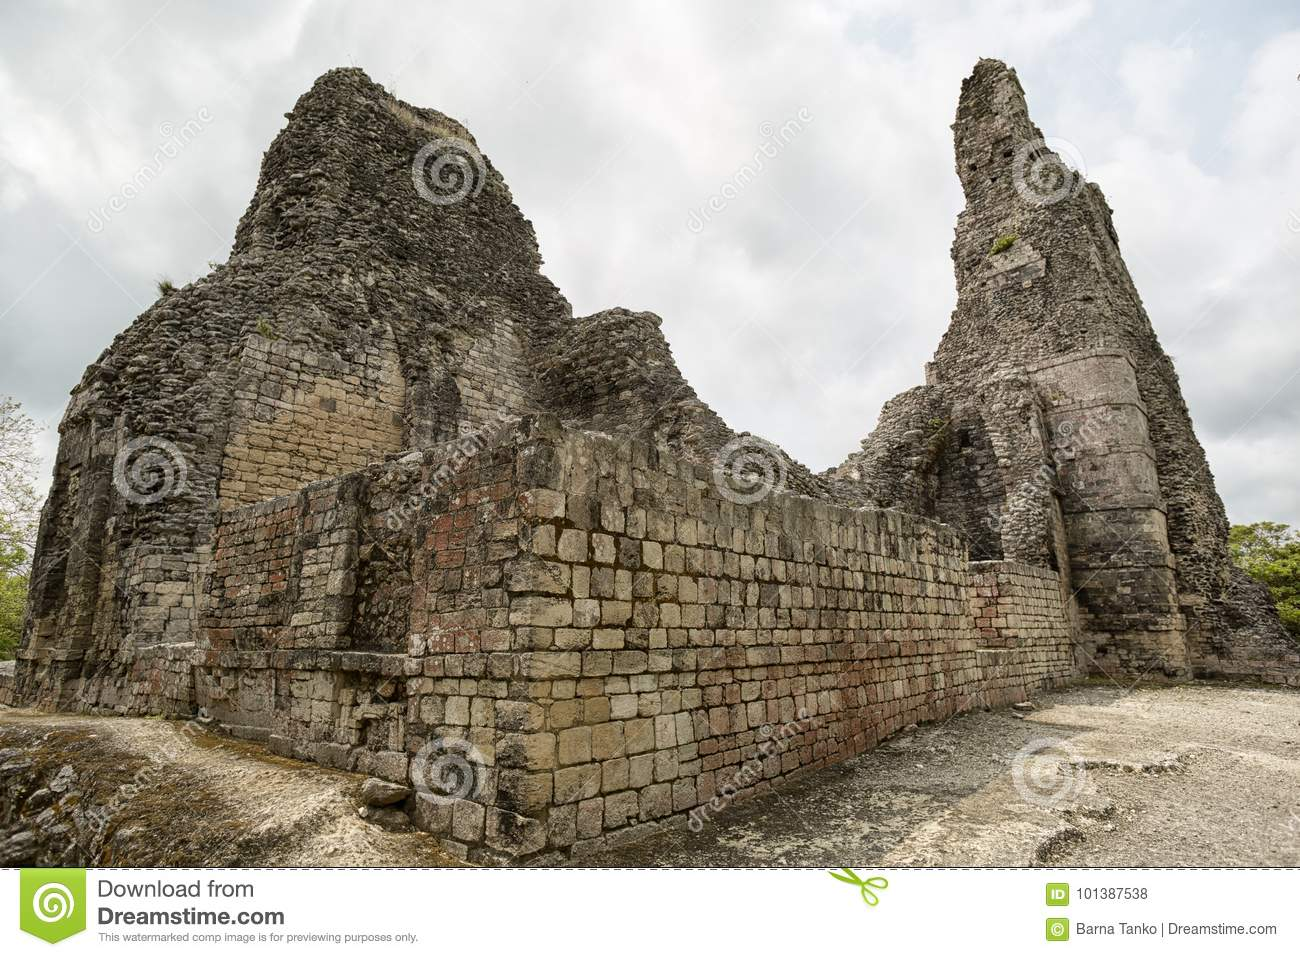 The ruins of Xpujil maya archaeological site in Mexico